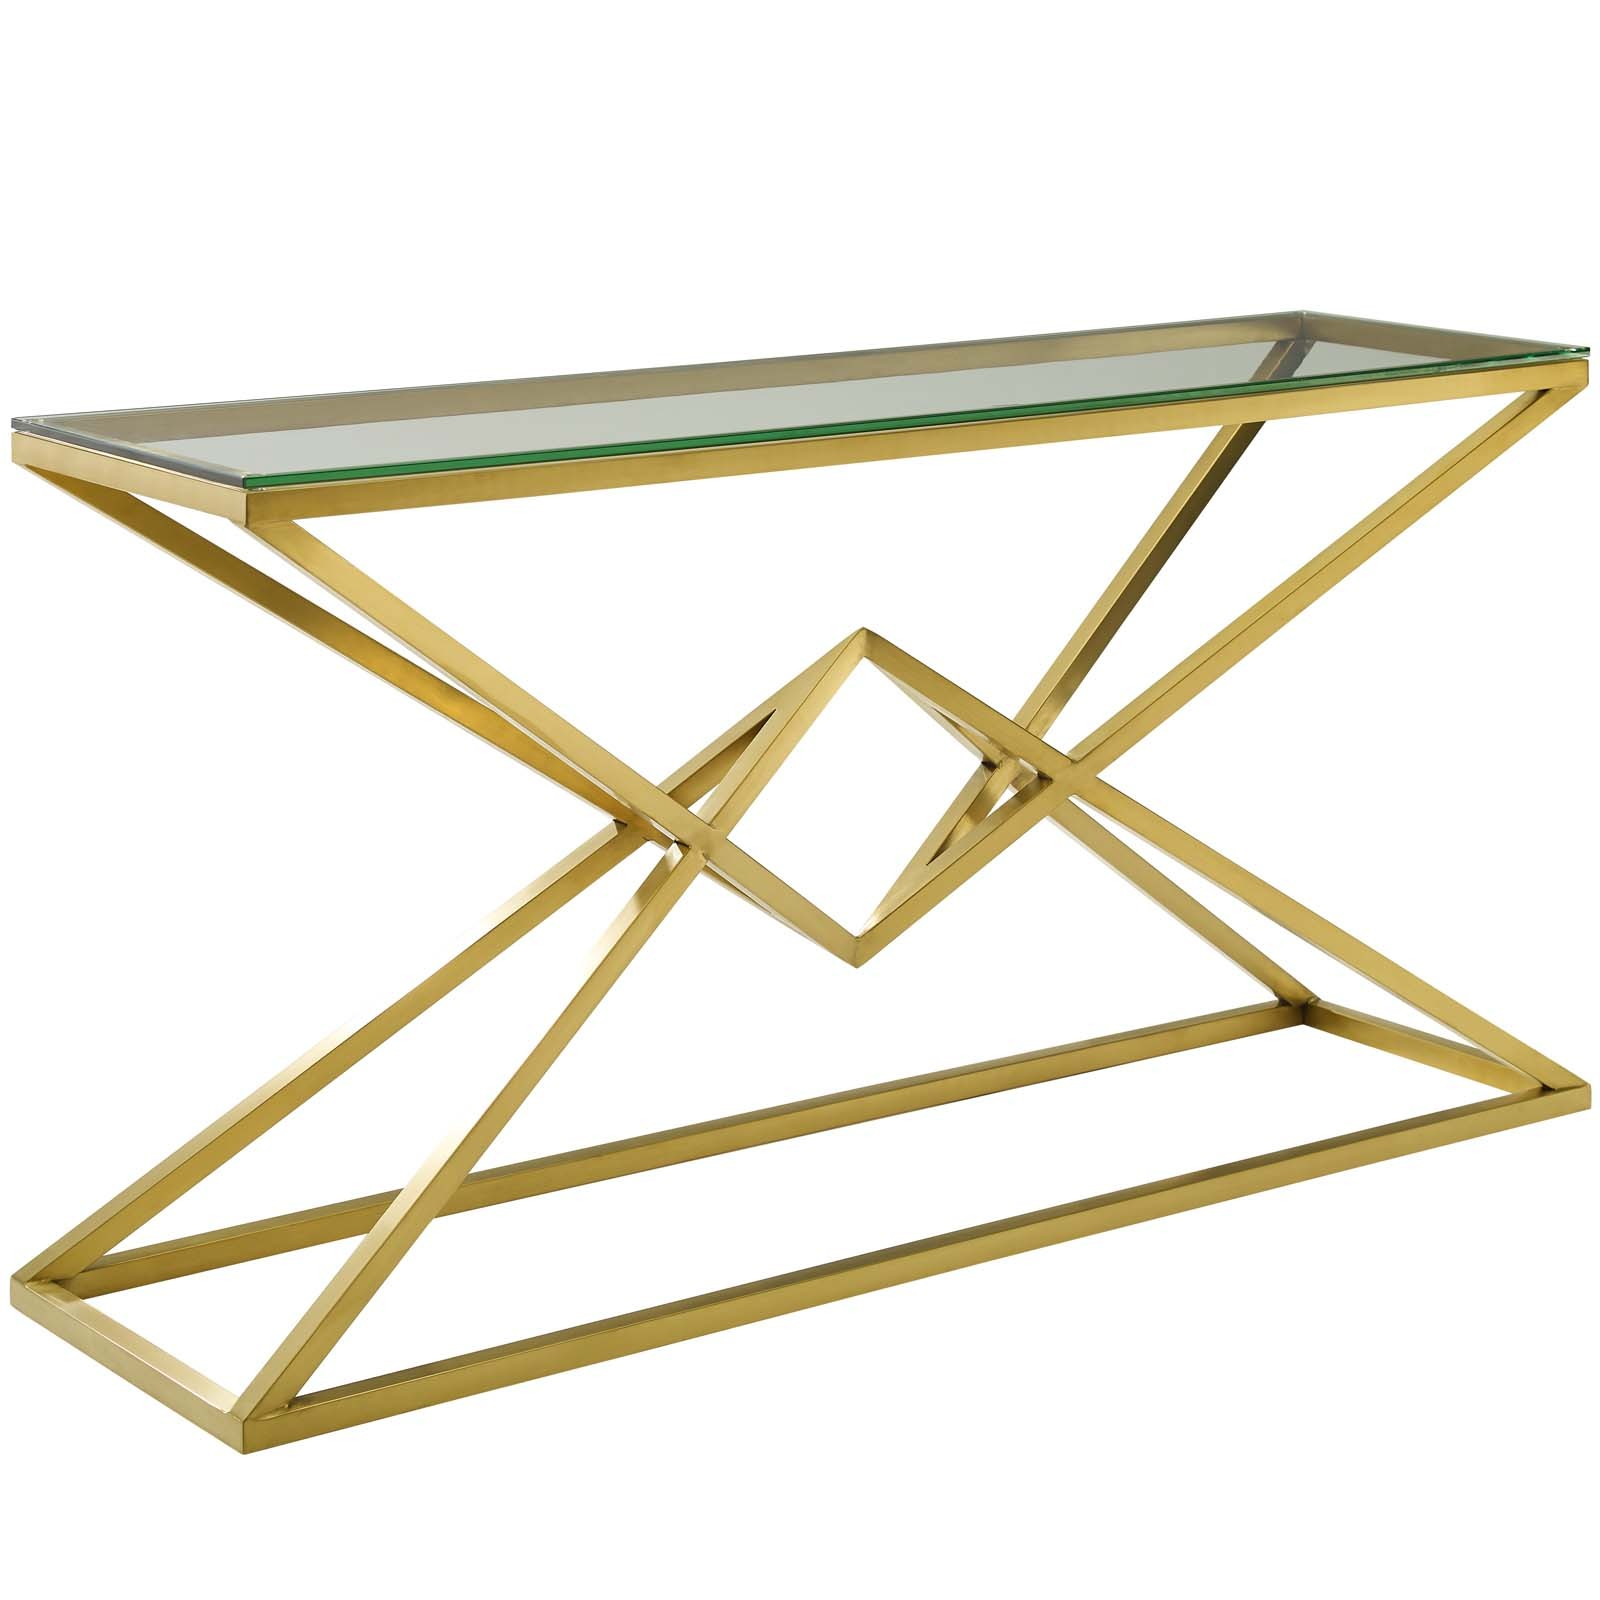 "Point 59"" Brushed Gold Metal Stainless Steel Console Table in Gold"